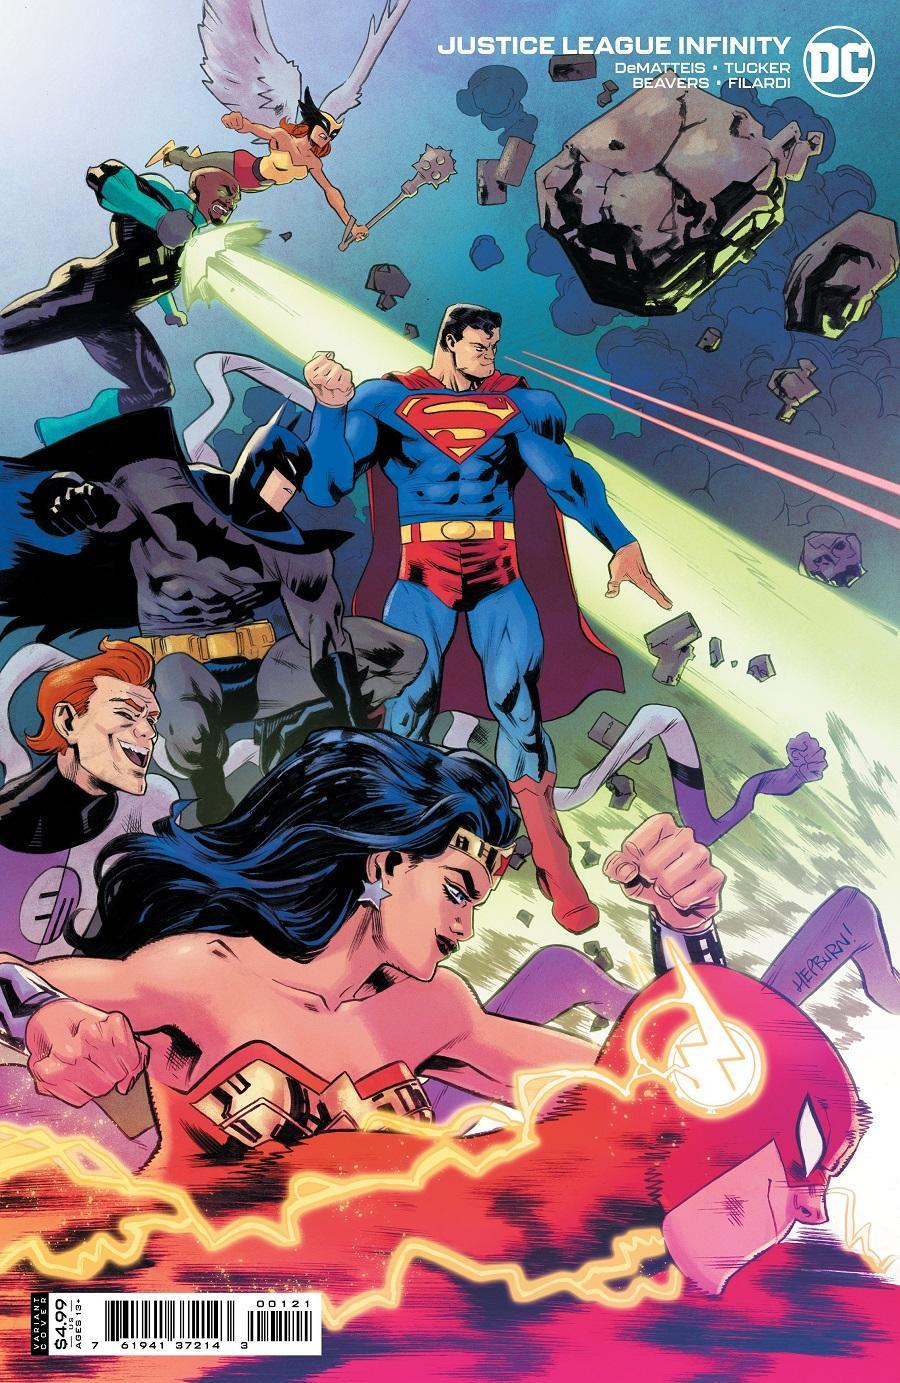 The variant cover for Justice League Infinity shows the team joined by the Elongated Man.